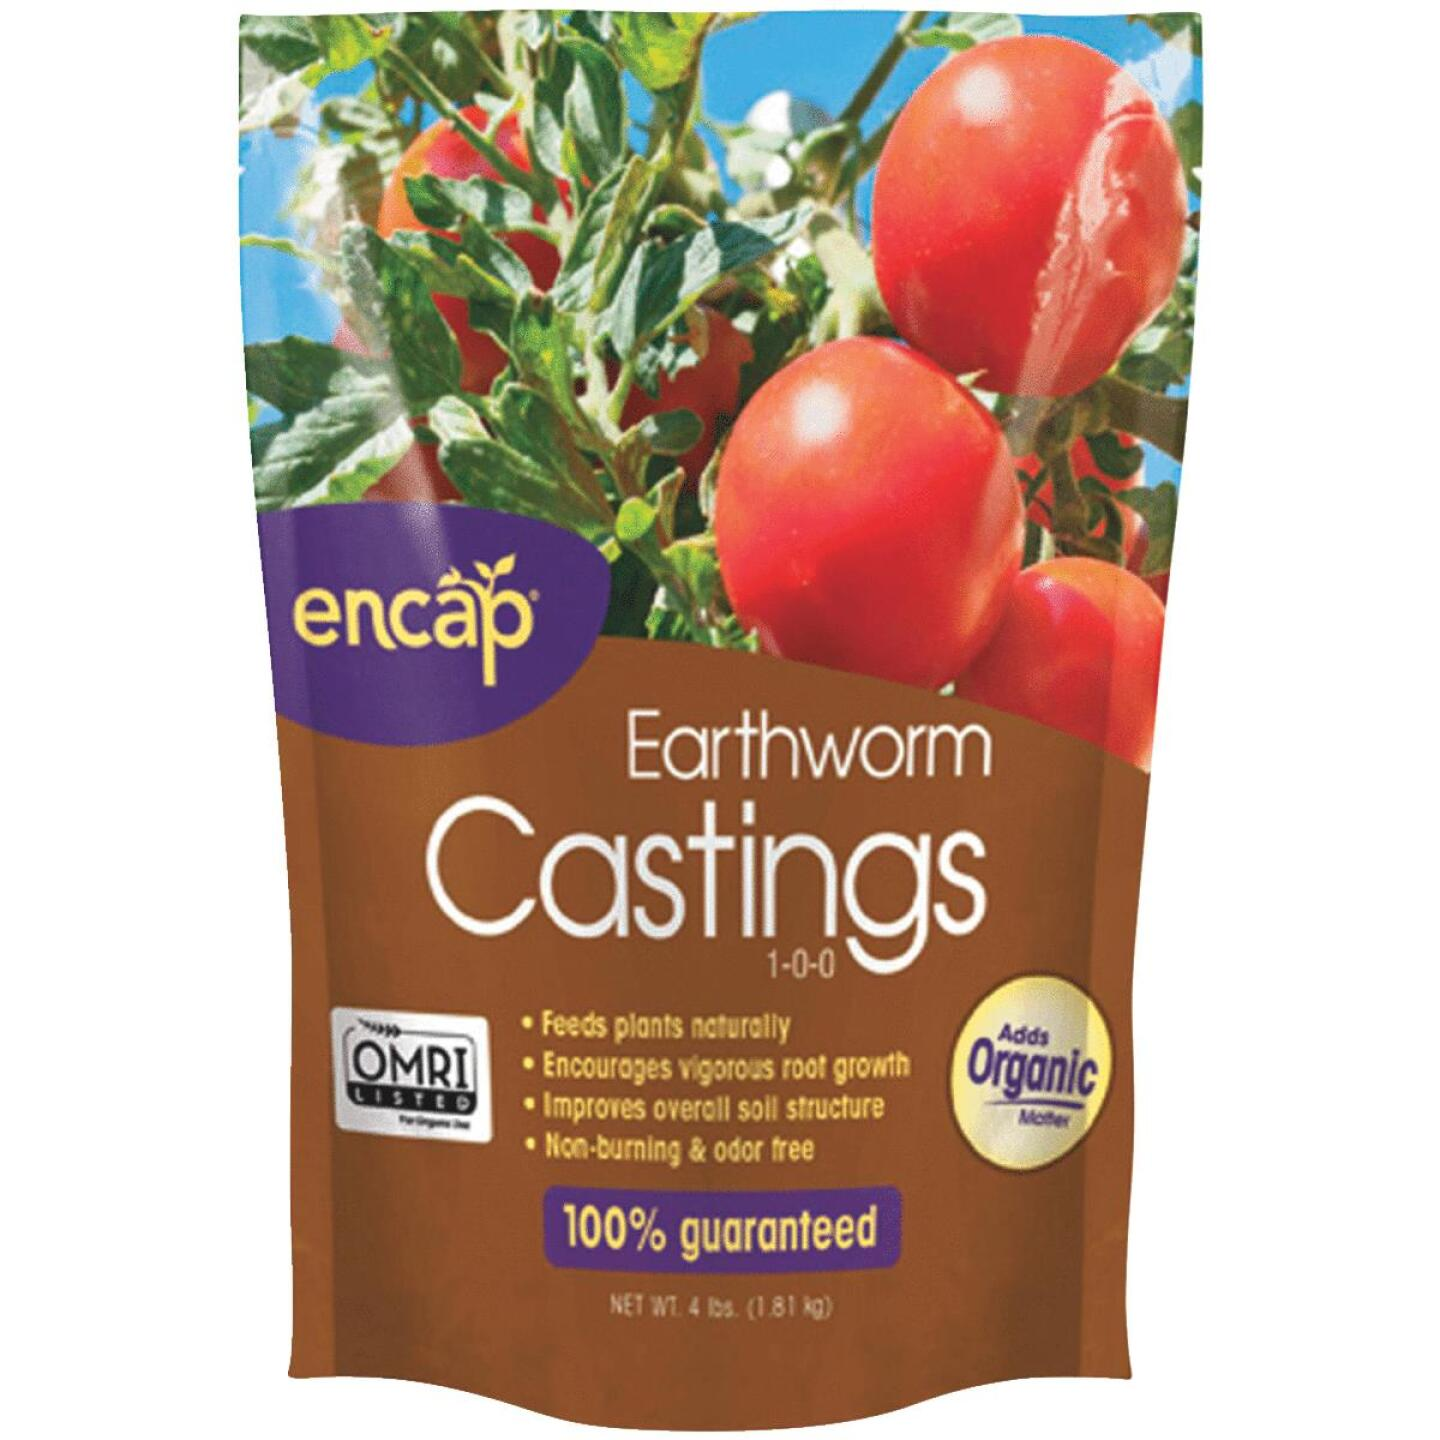 Encap 4 Lb. Earth Worm Castings Soil Condtioner Image 1